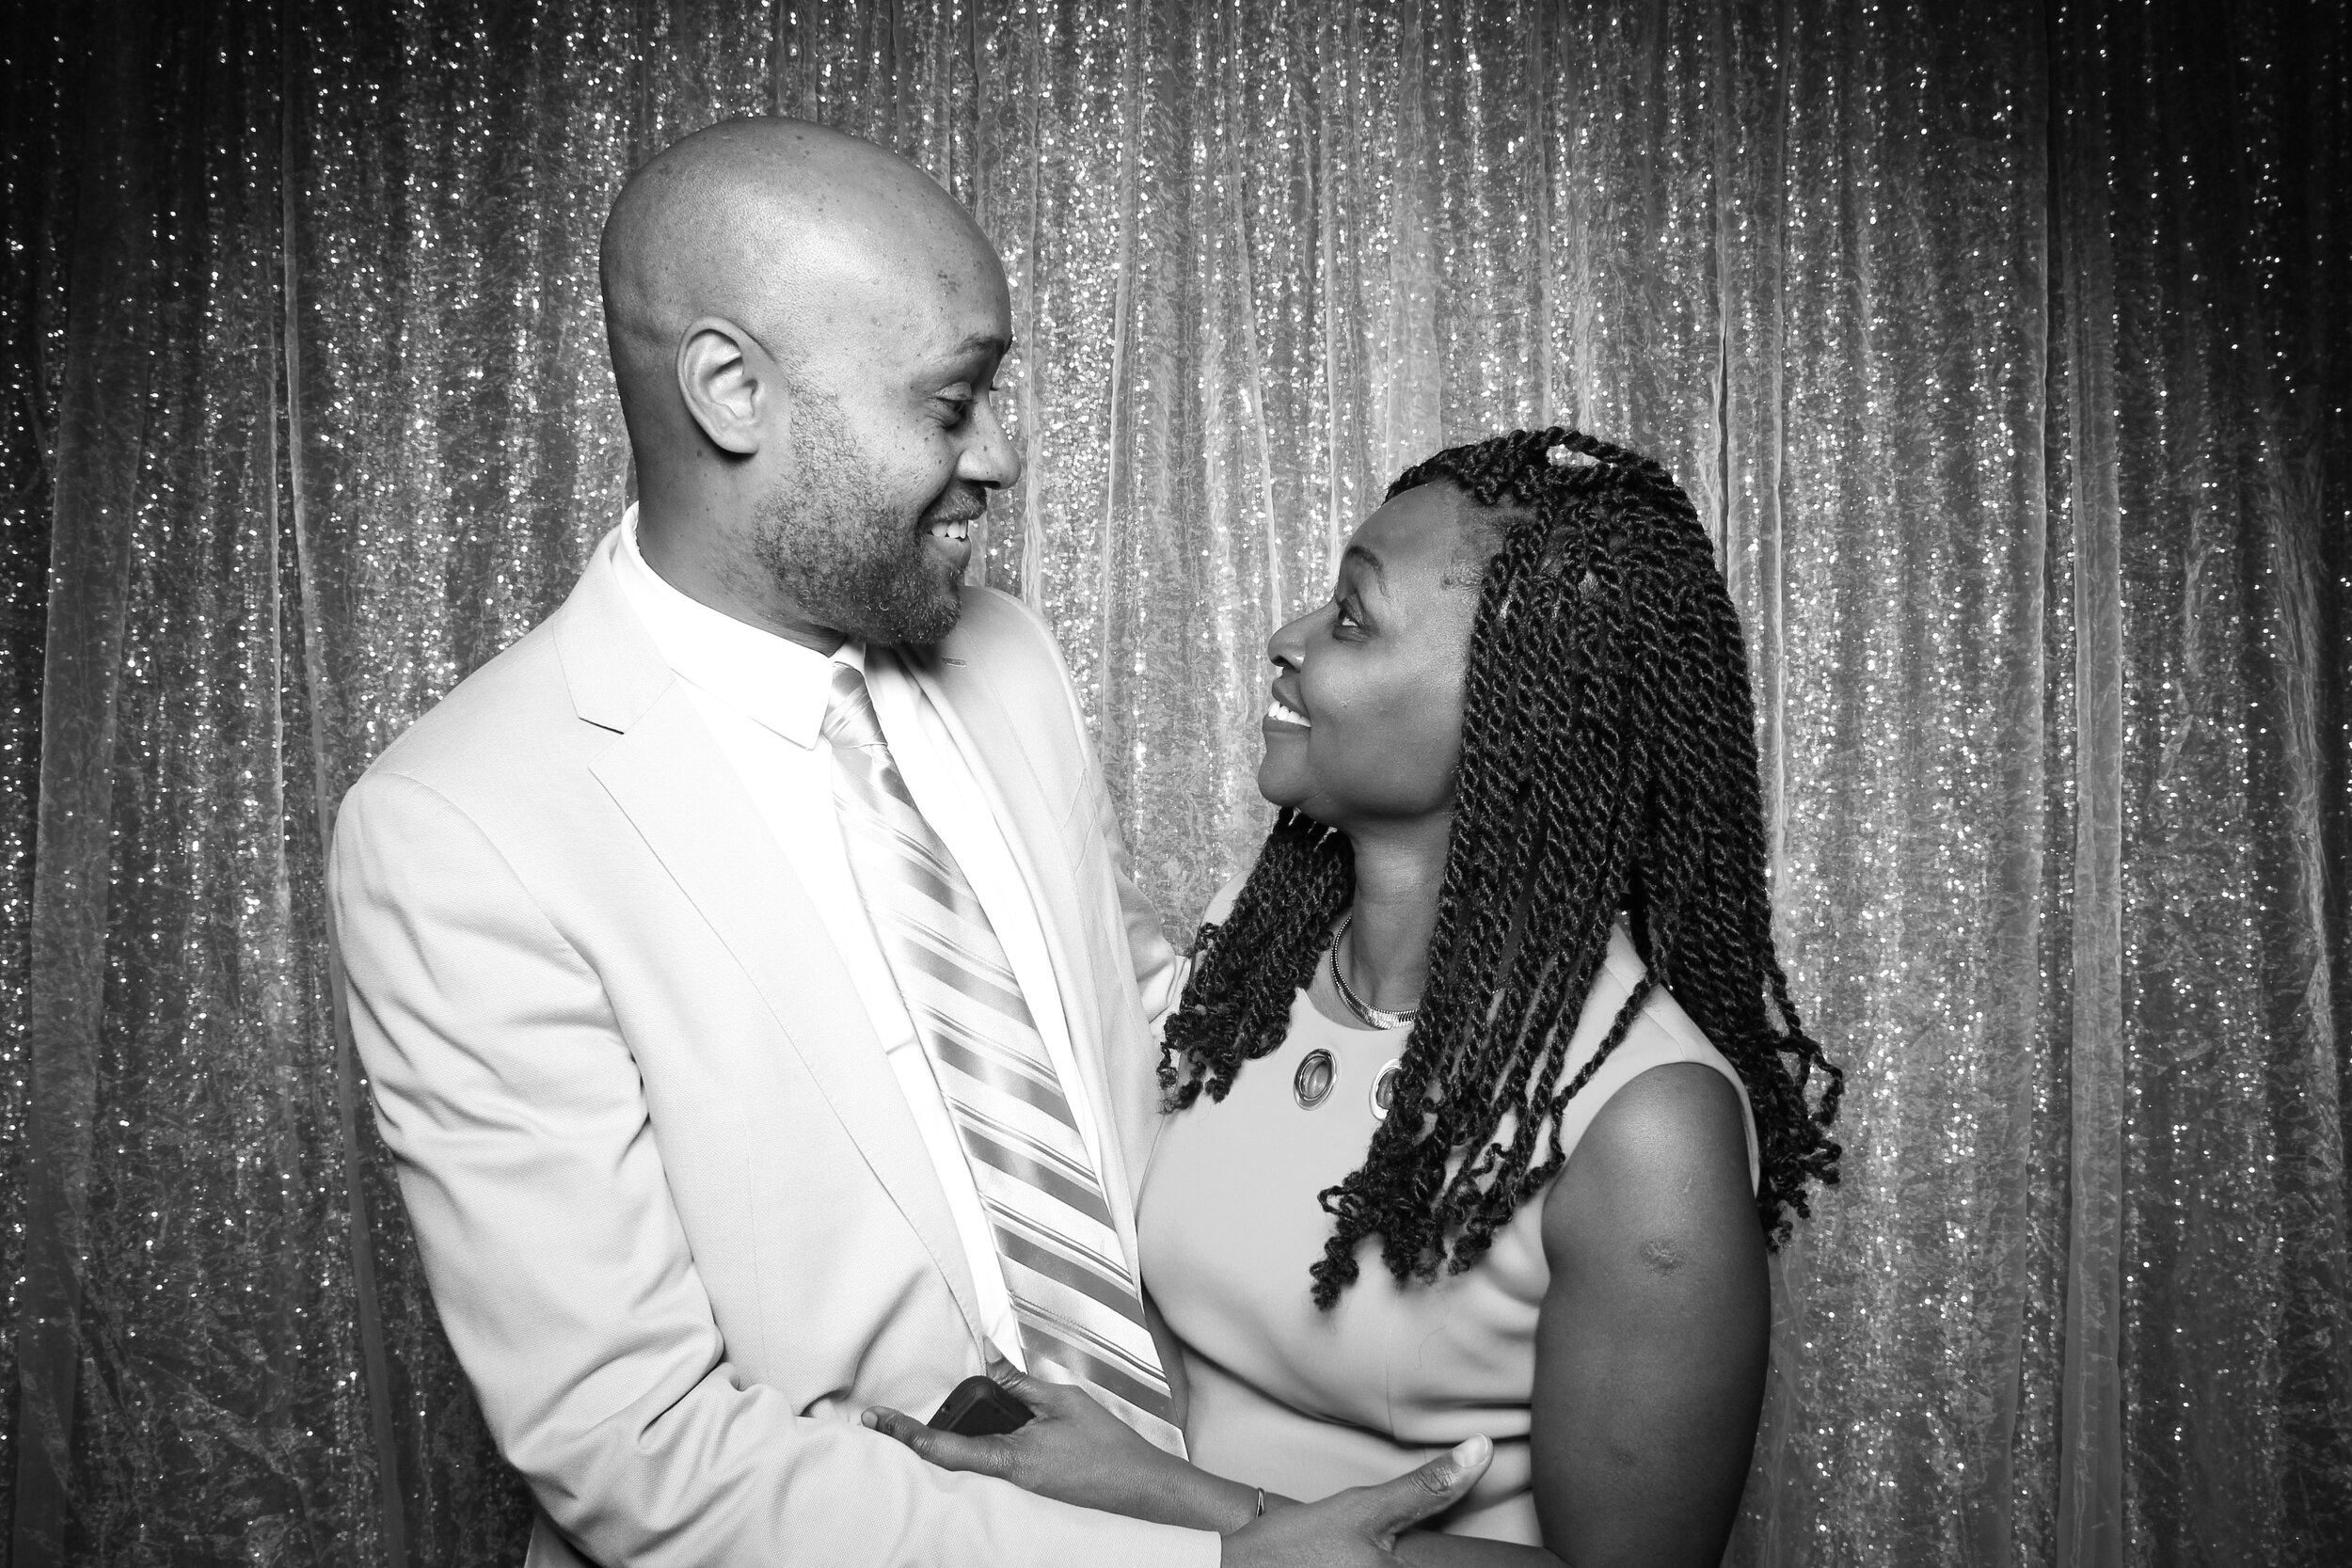 Ravisloe_Country_Club_Wedding_Photo_Booth_05.jpg